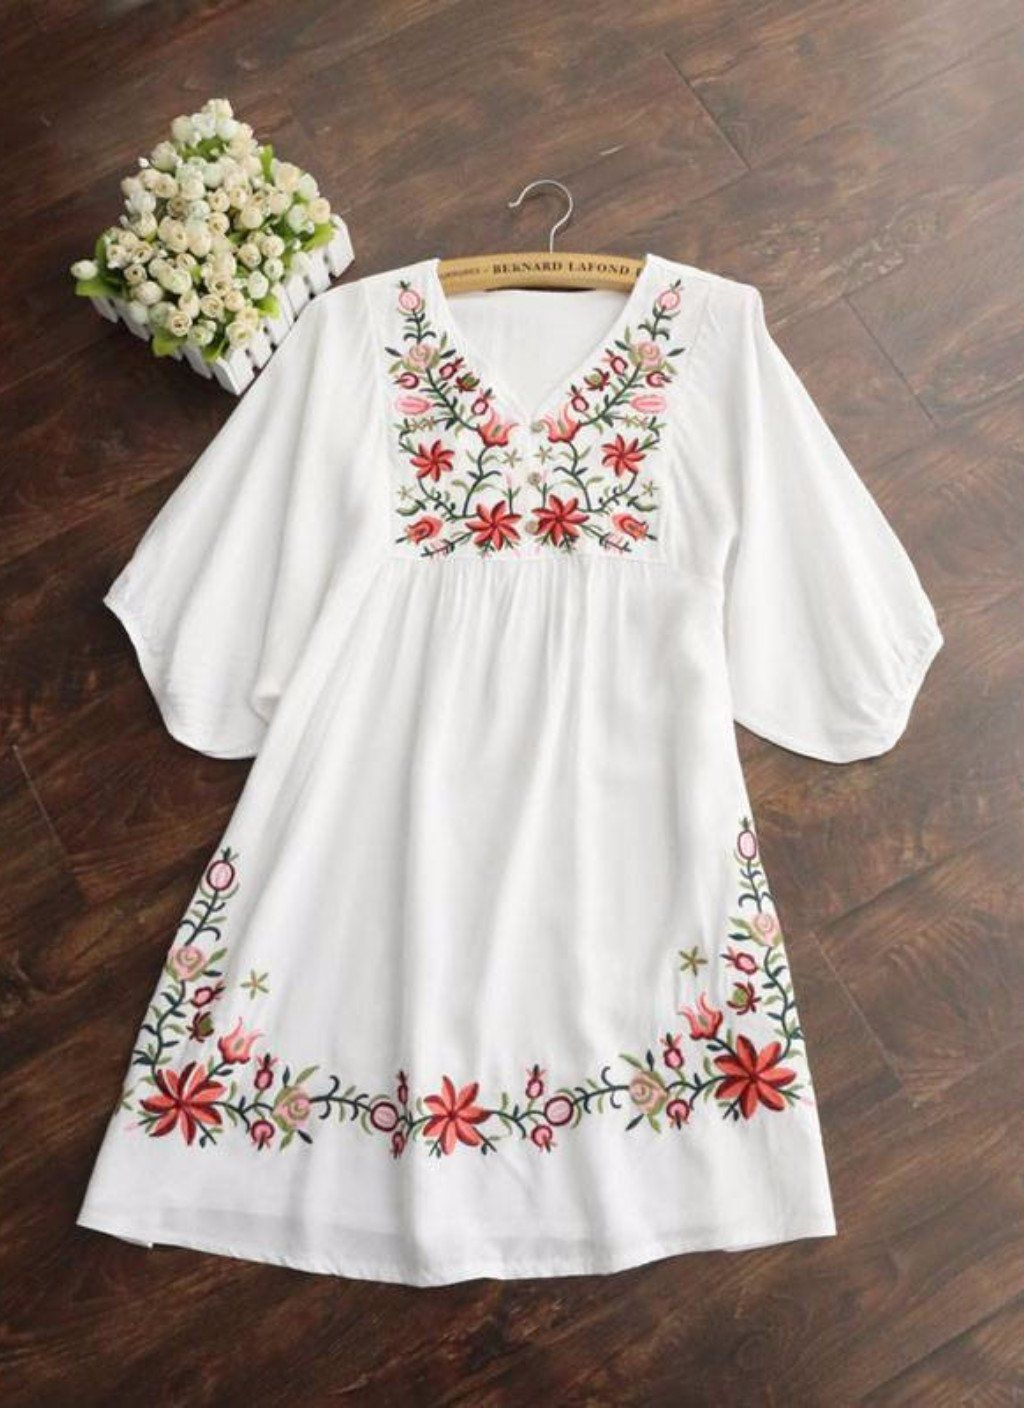 Colorpop floral embroidery trim embellish an airy cotton minidress